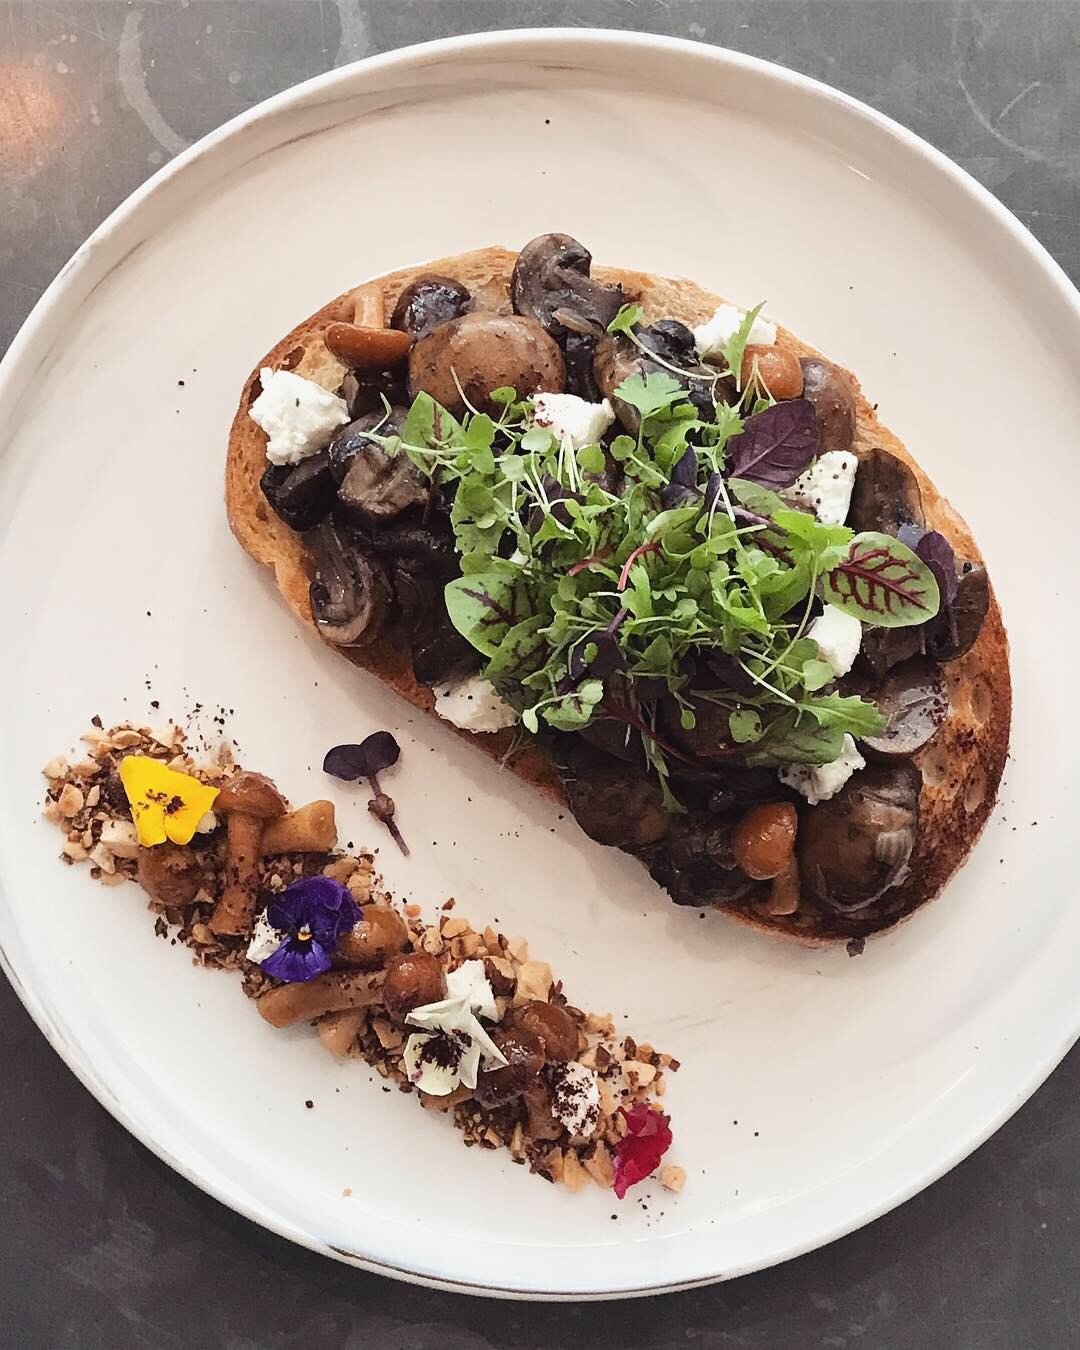 17-23 January - Locally foraged sumac spiced wild mushroom bruschetta, on our stone baked artisan sourdough, goats cheese and toasted almonds.